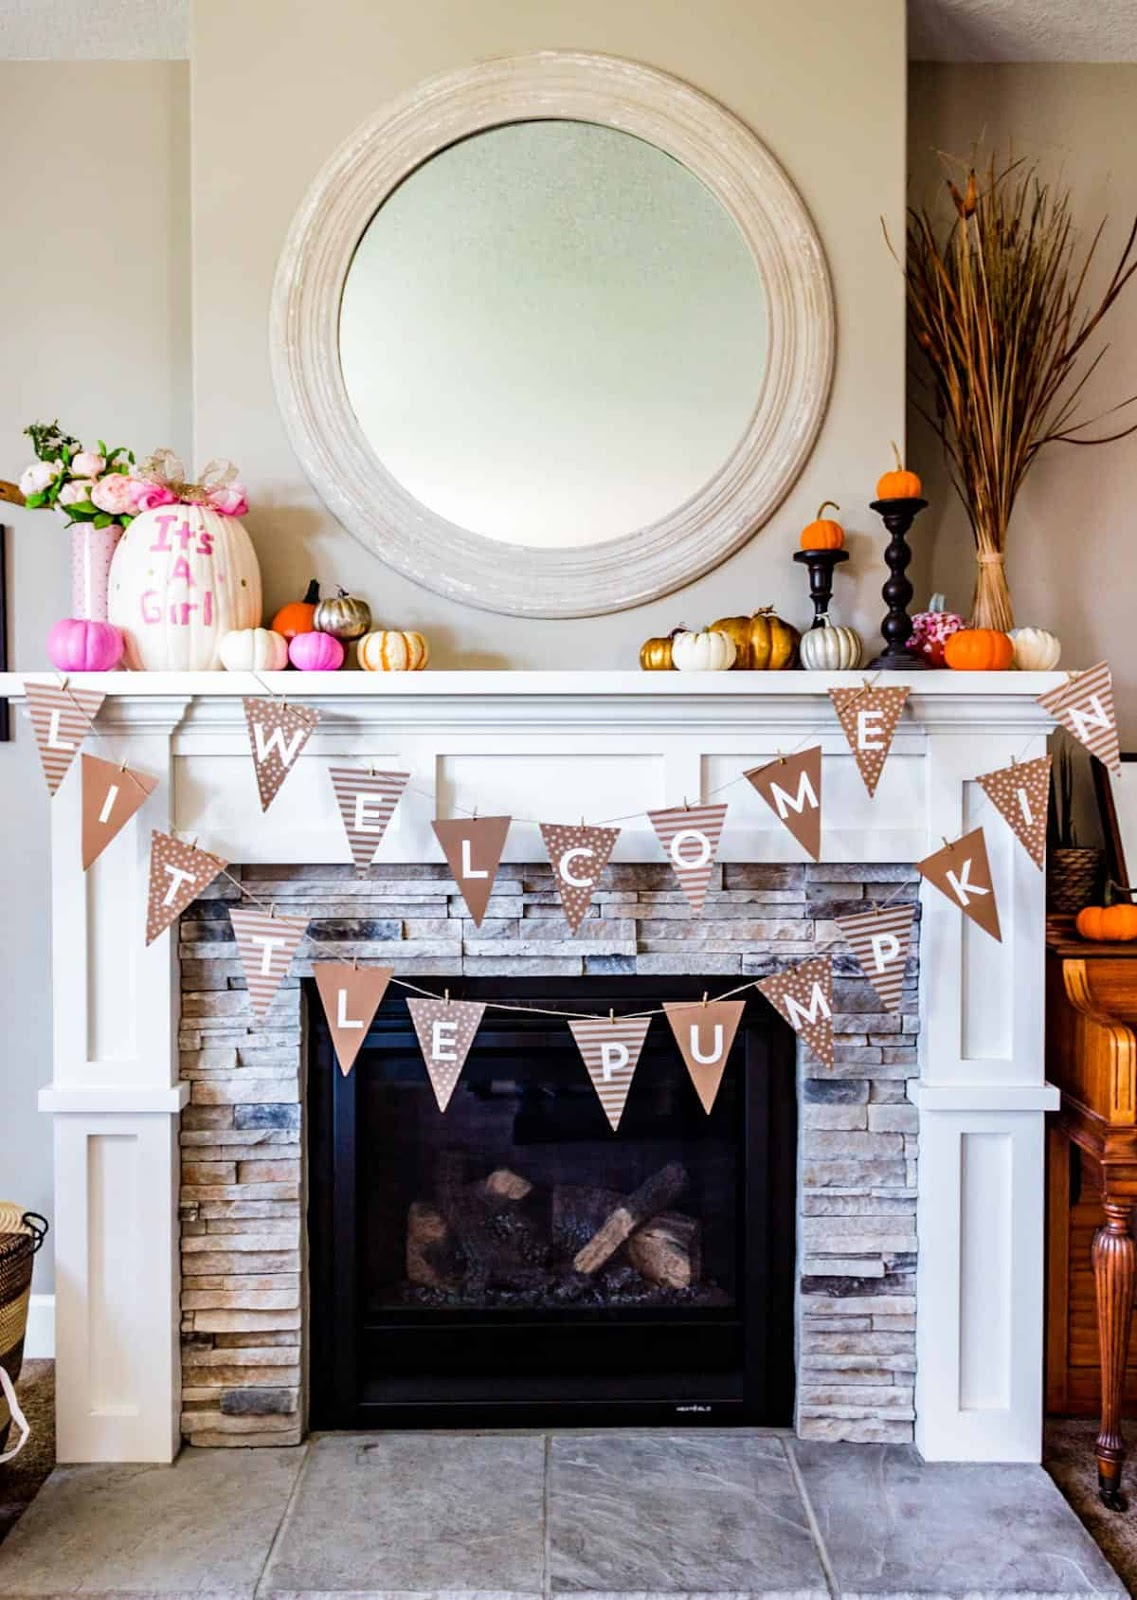 Pumpkin themed baby shower banner over the mantle